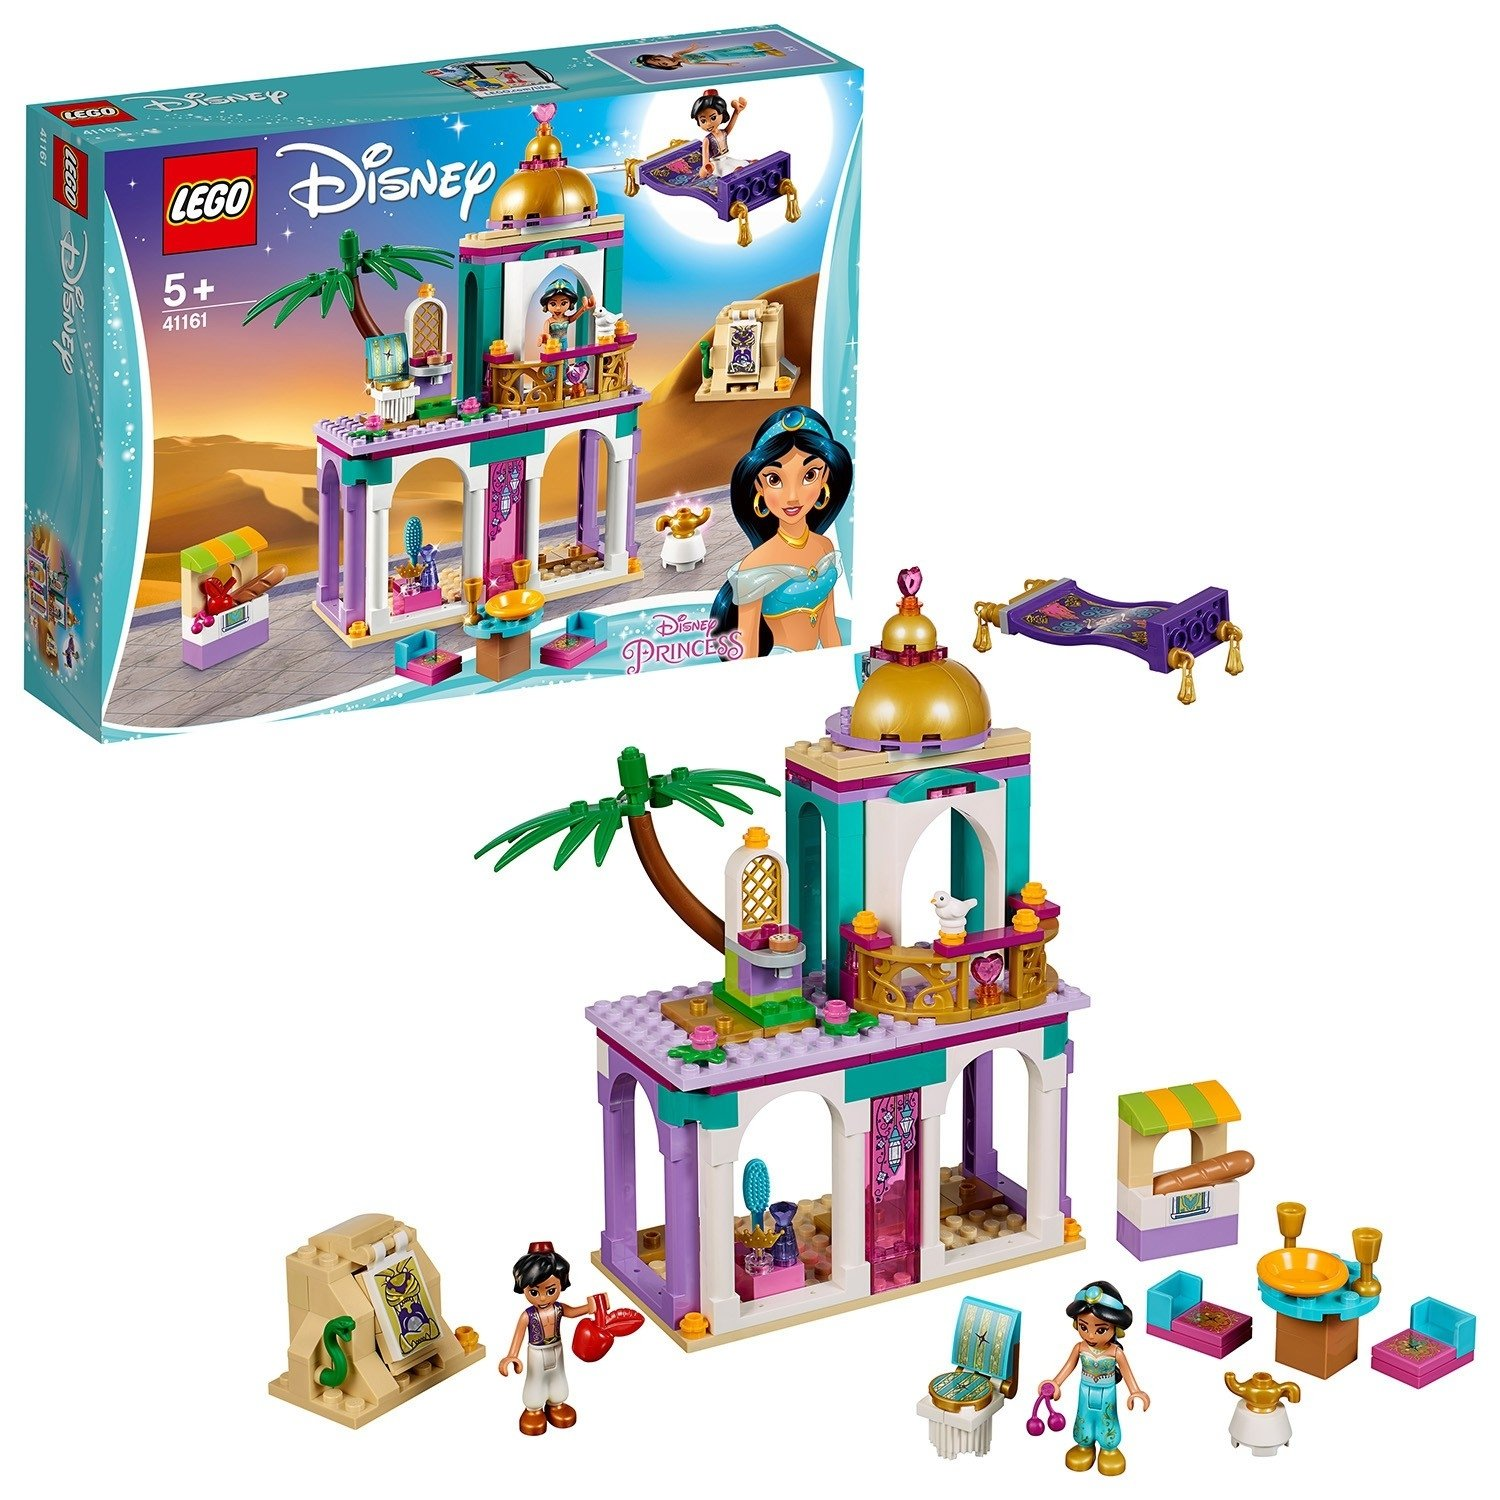 LEGO Disney Princess Aladdin and Jasmine Palace - 41161